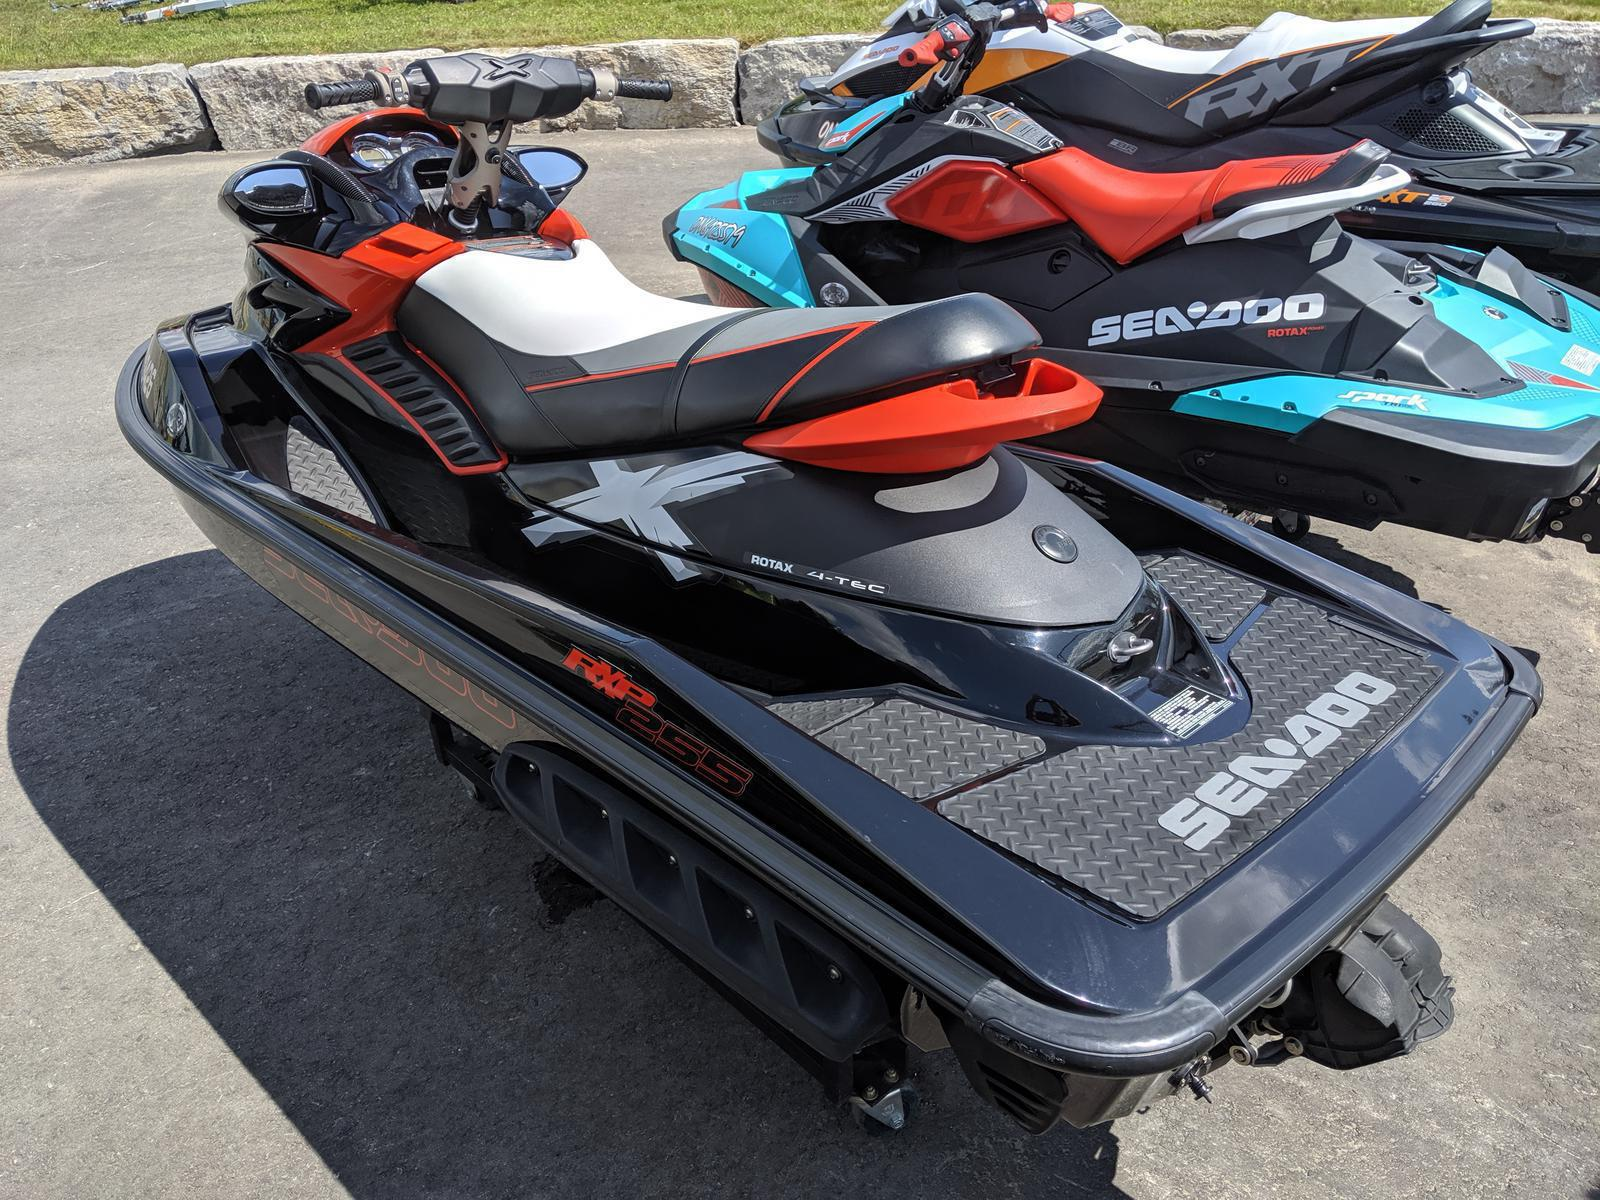 2010 Sea-Doo RXP-X 255 for sale in Courtland, ON  Lockhart's